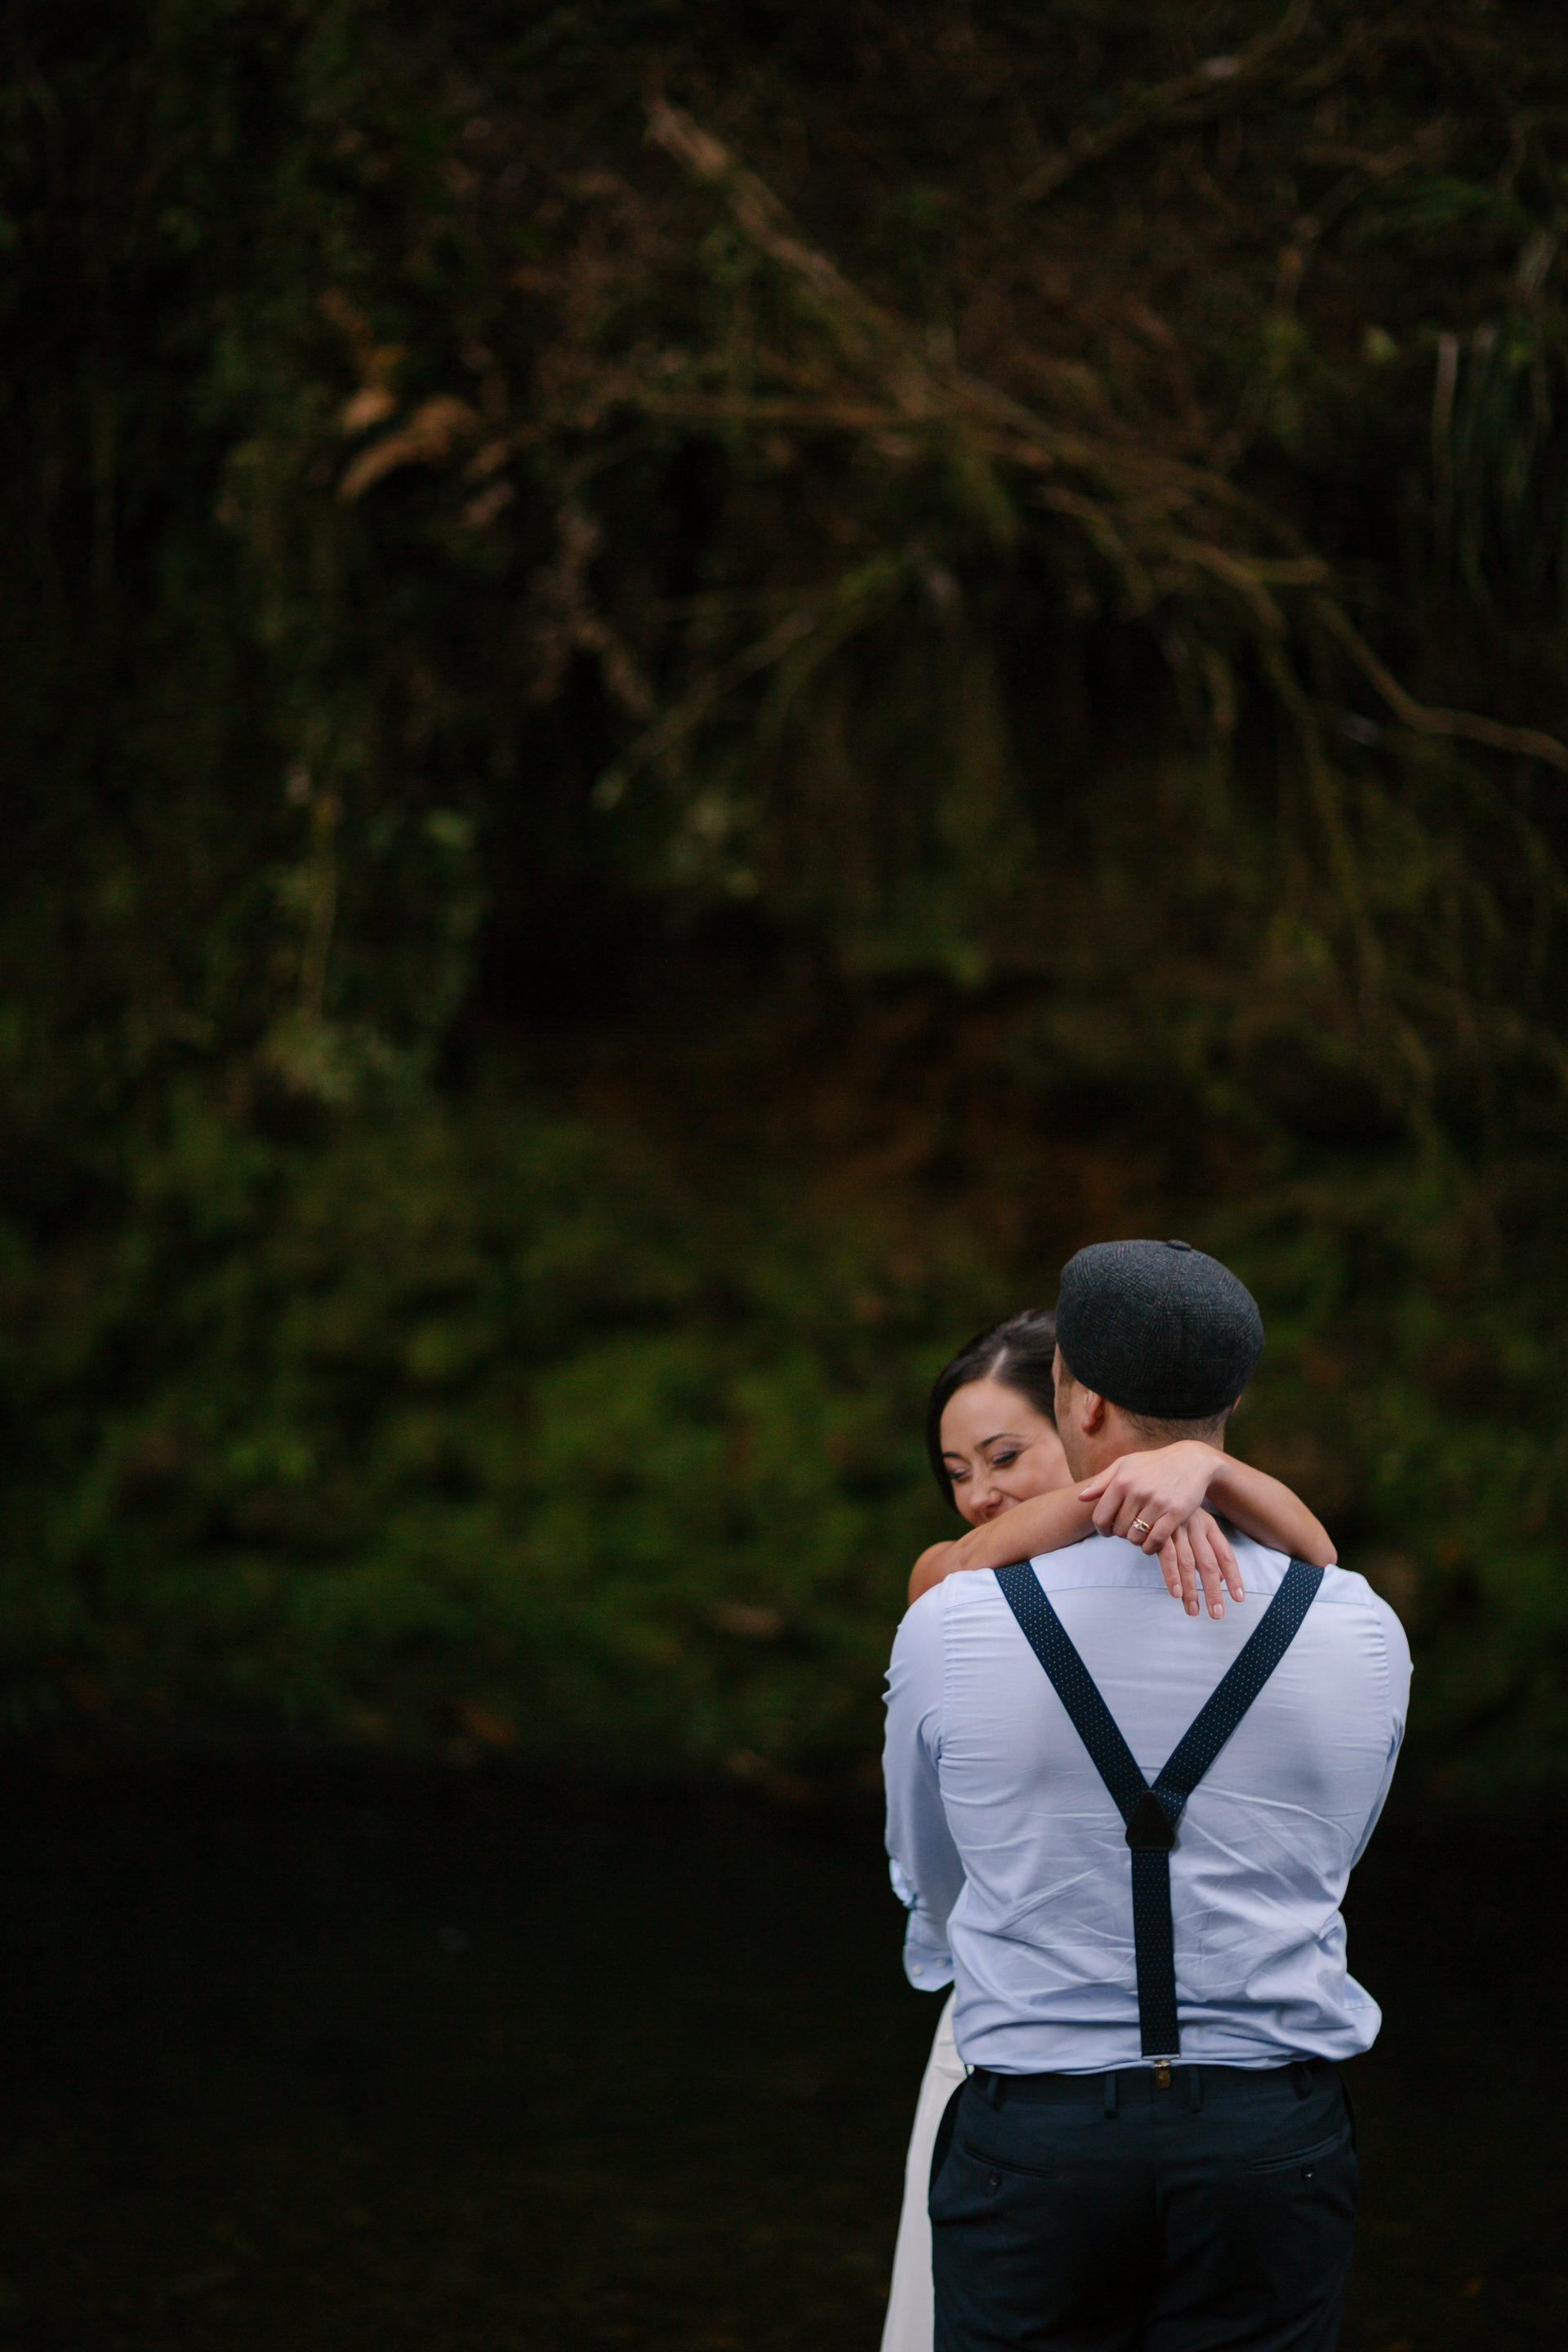 The_Official_Photographers_shannon-Noel-Pirongia-forest-park-wedding_MG_3861